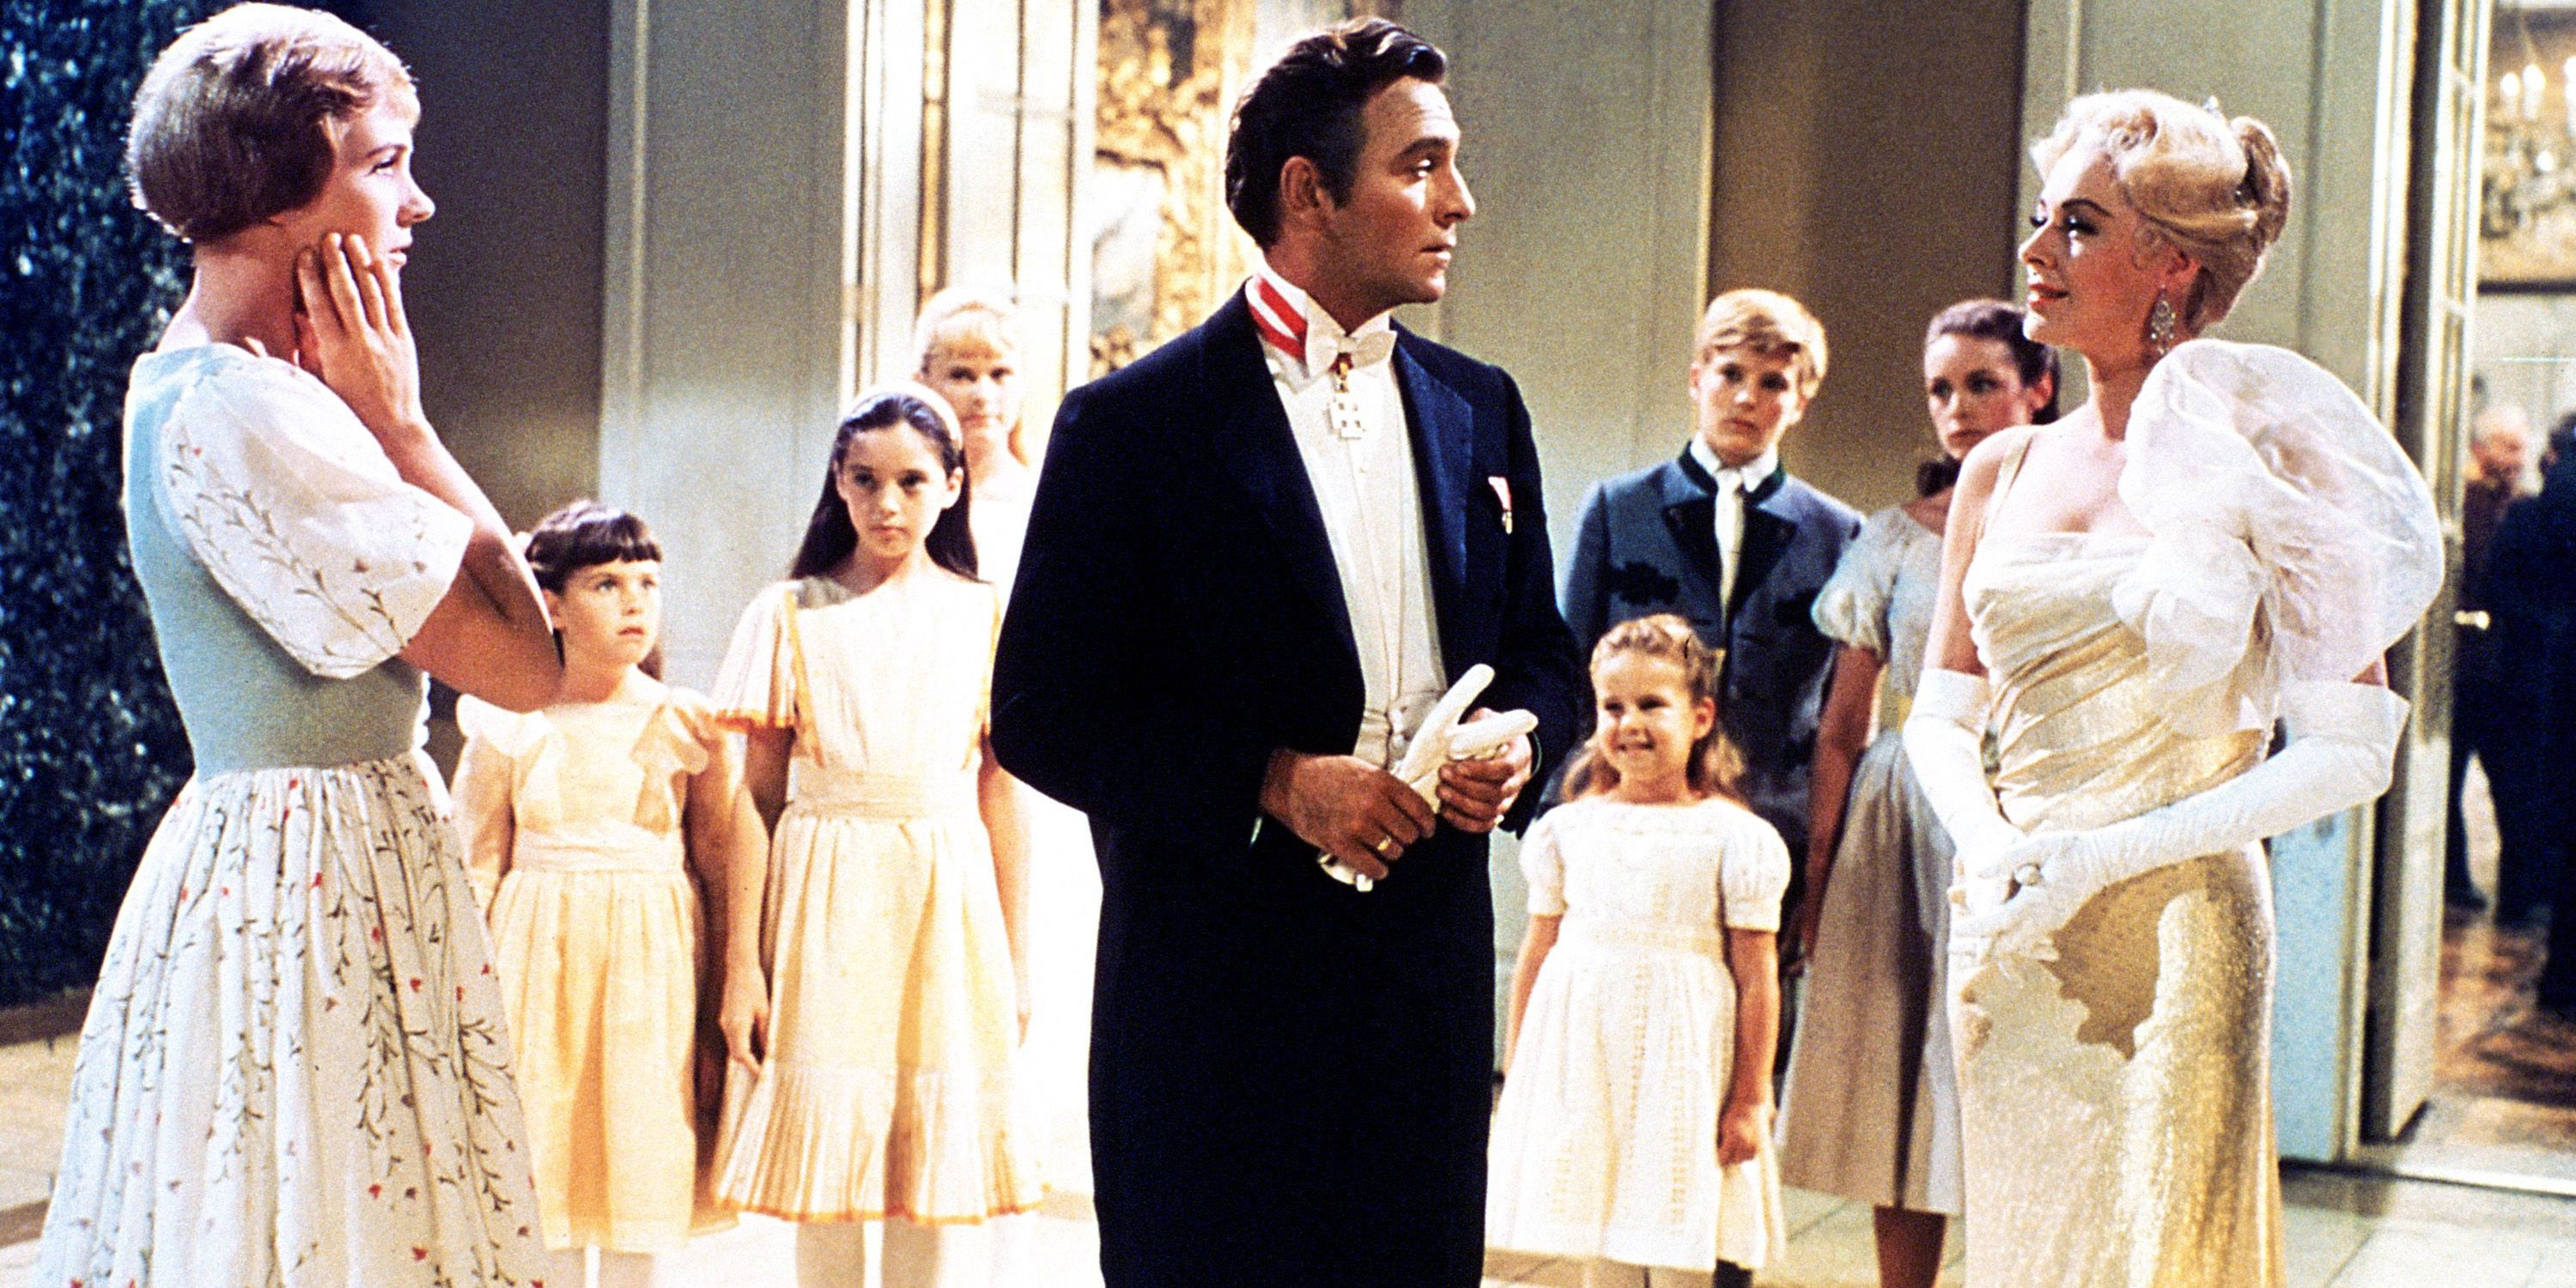 Most stylish moments from The Sound of Music